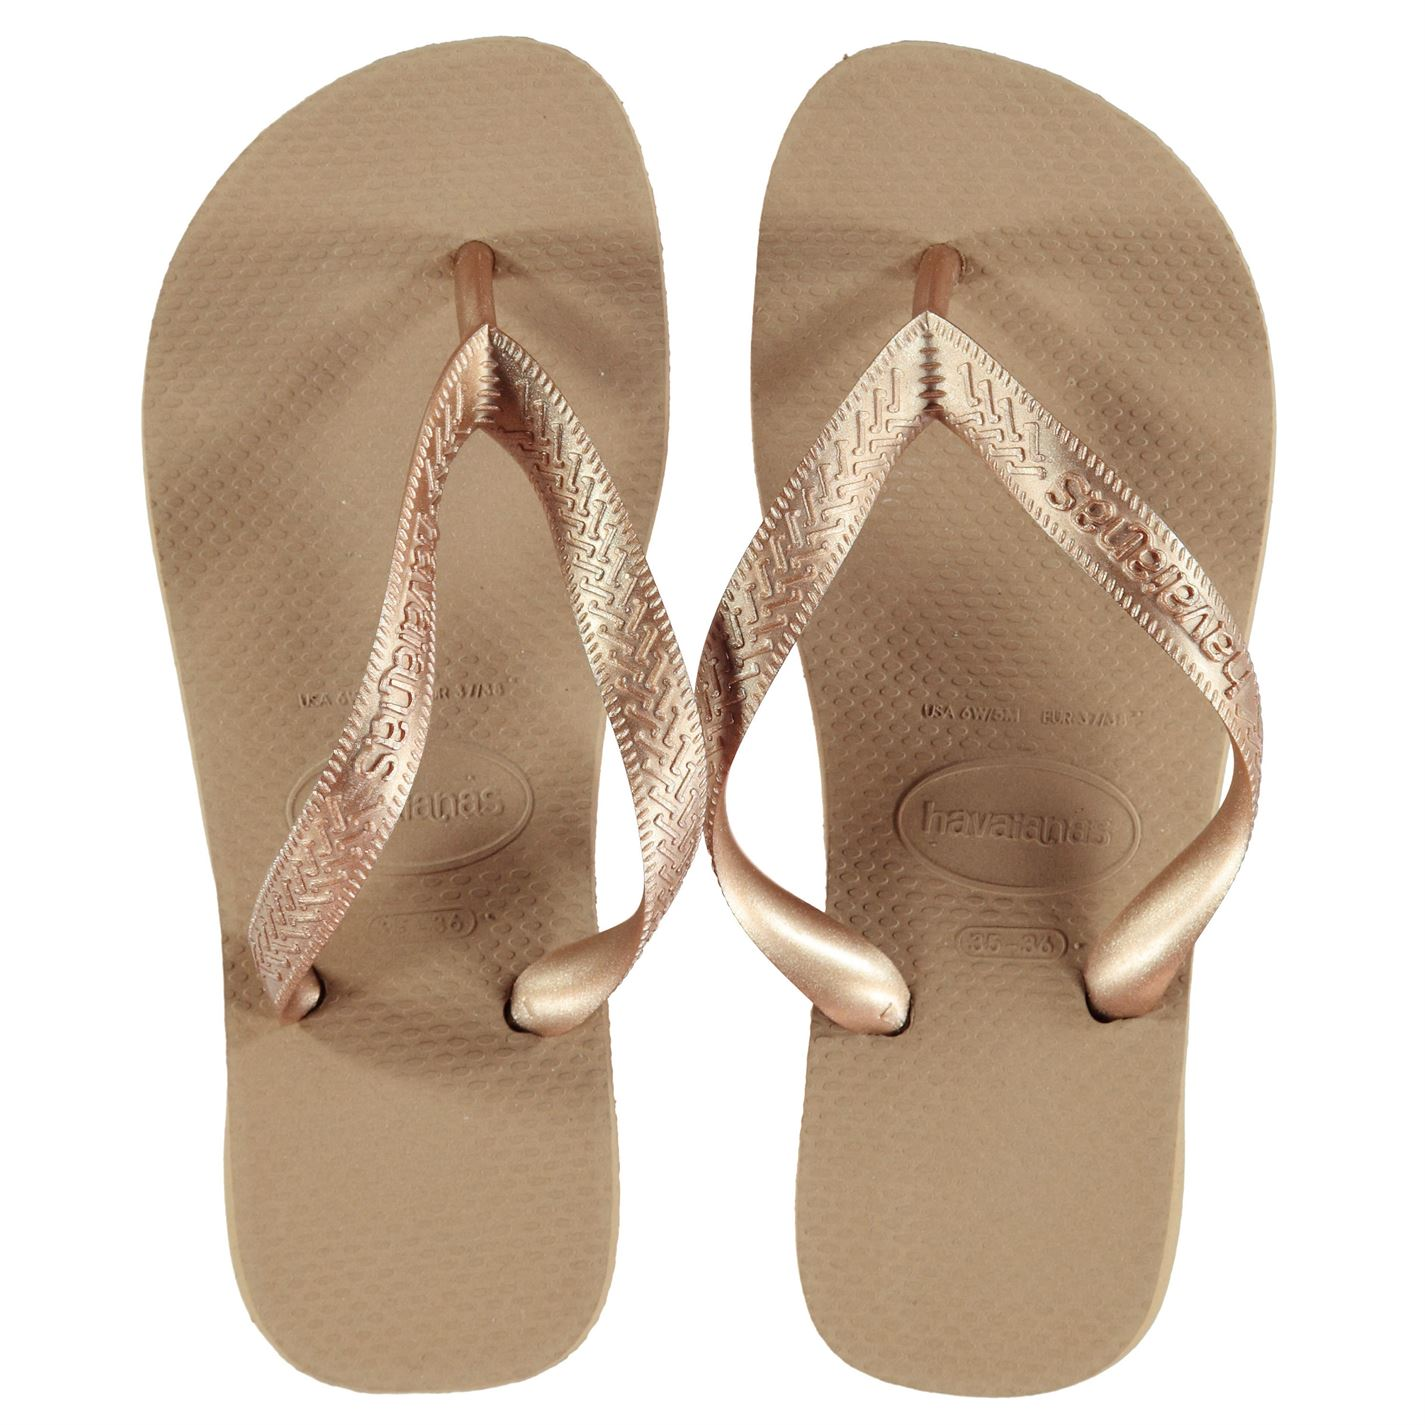 68f0d79a474 Havaianas Top Tiras Flip Flops Ladies Strap Toe Post Summer